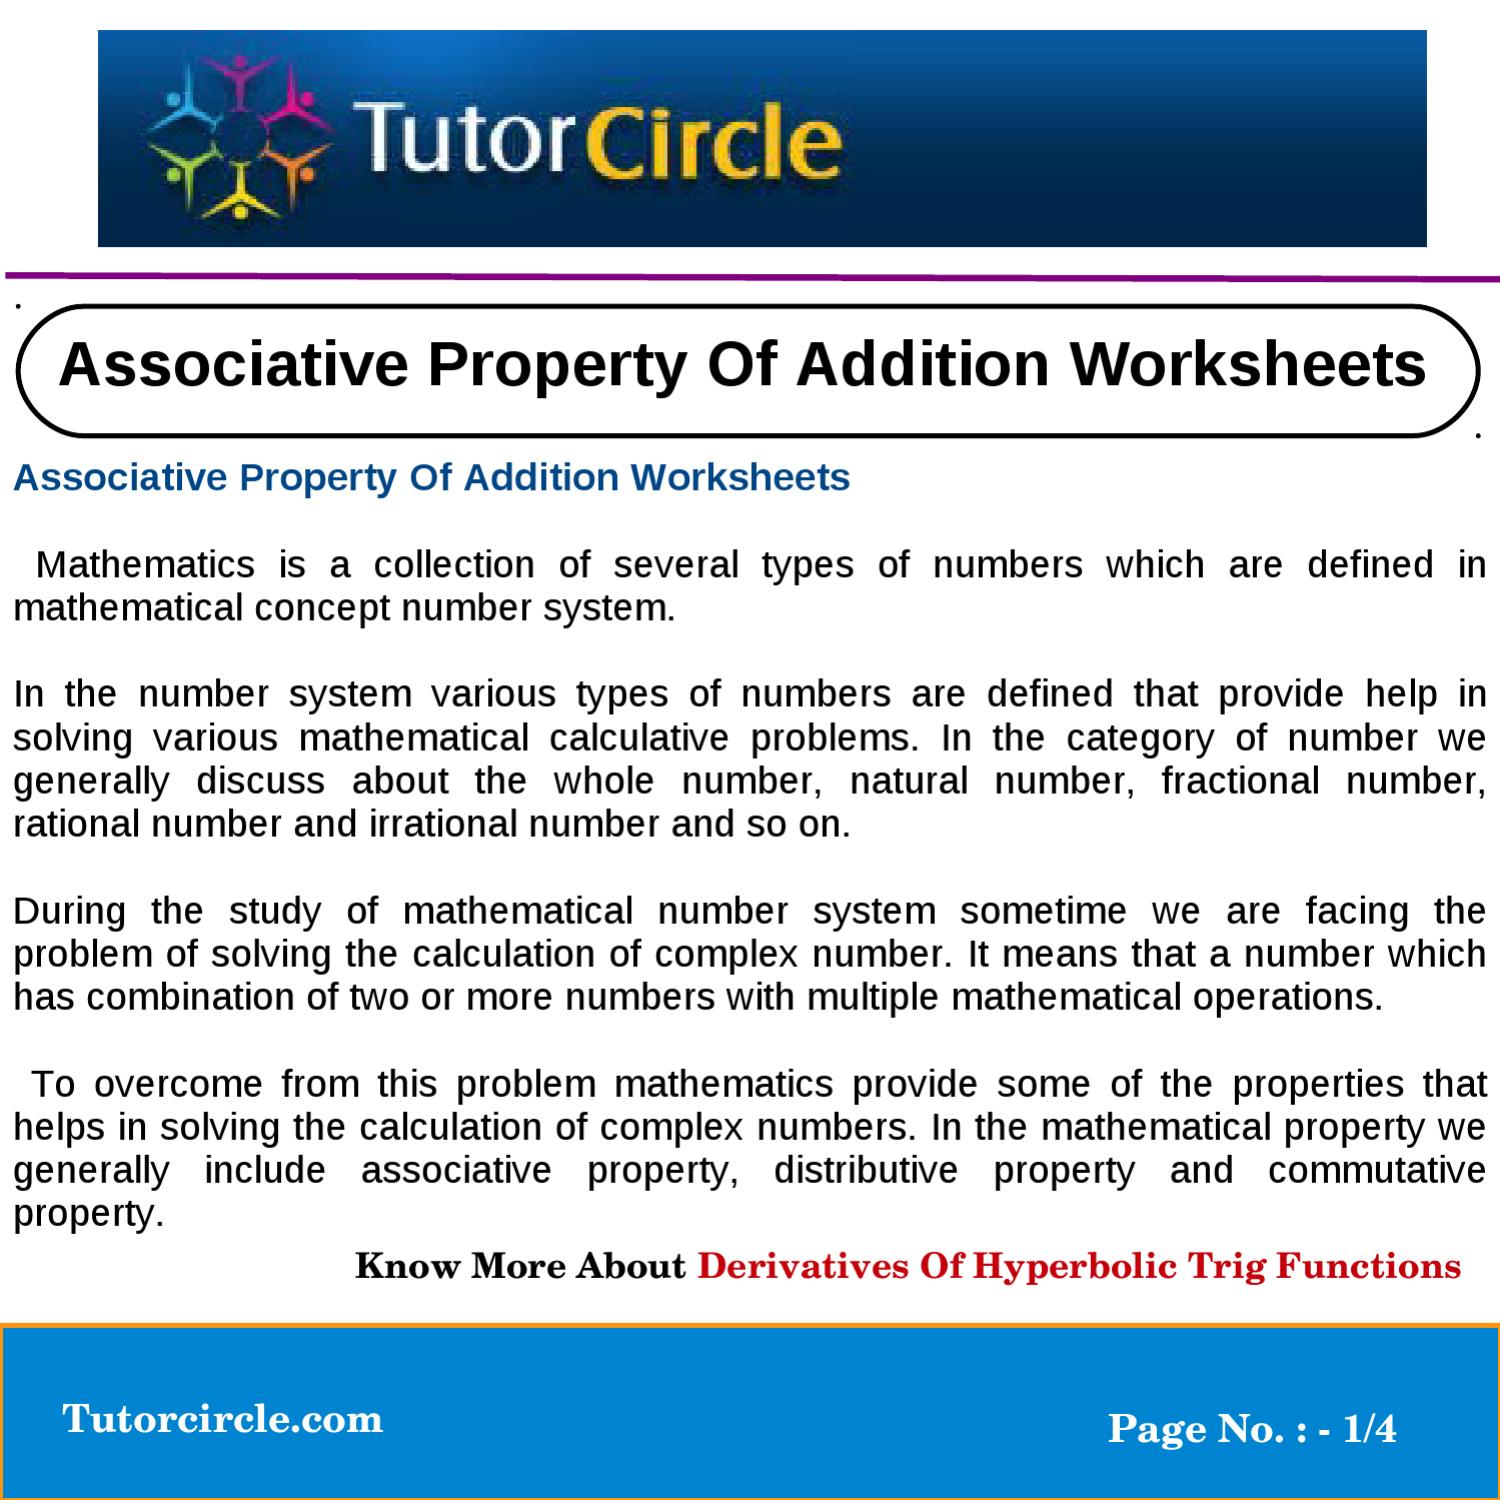 Associative Property Of Addition Worksheets By Tutorcircle Team Issuu Addition is associative means